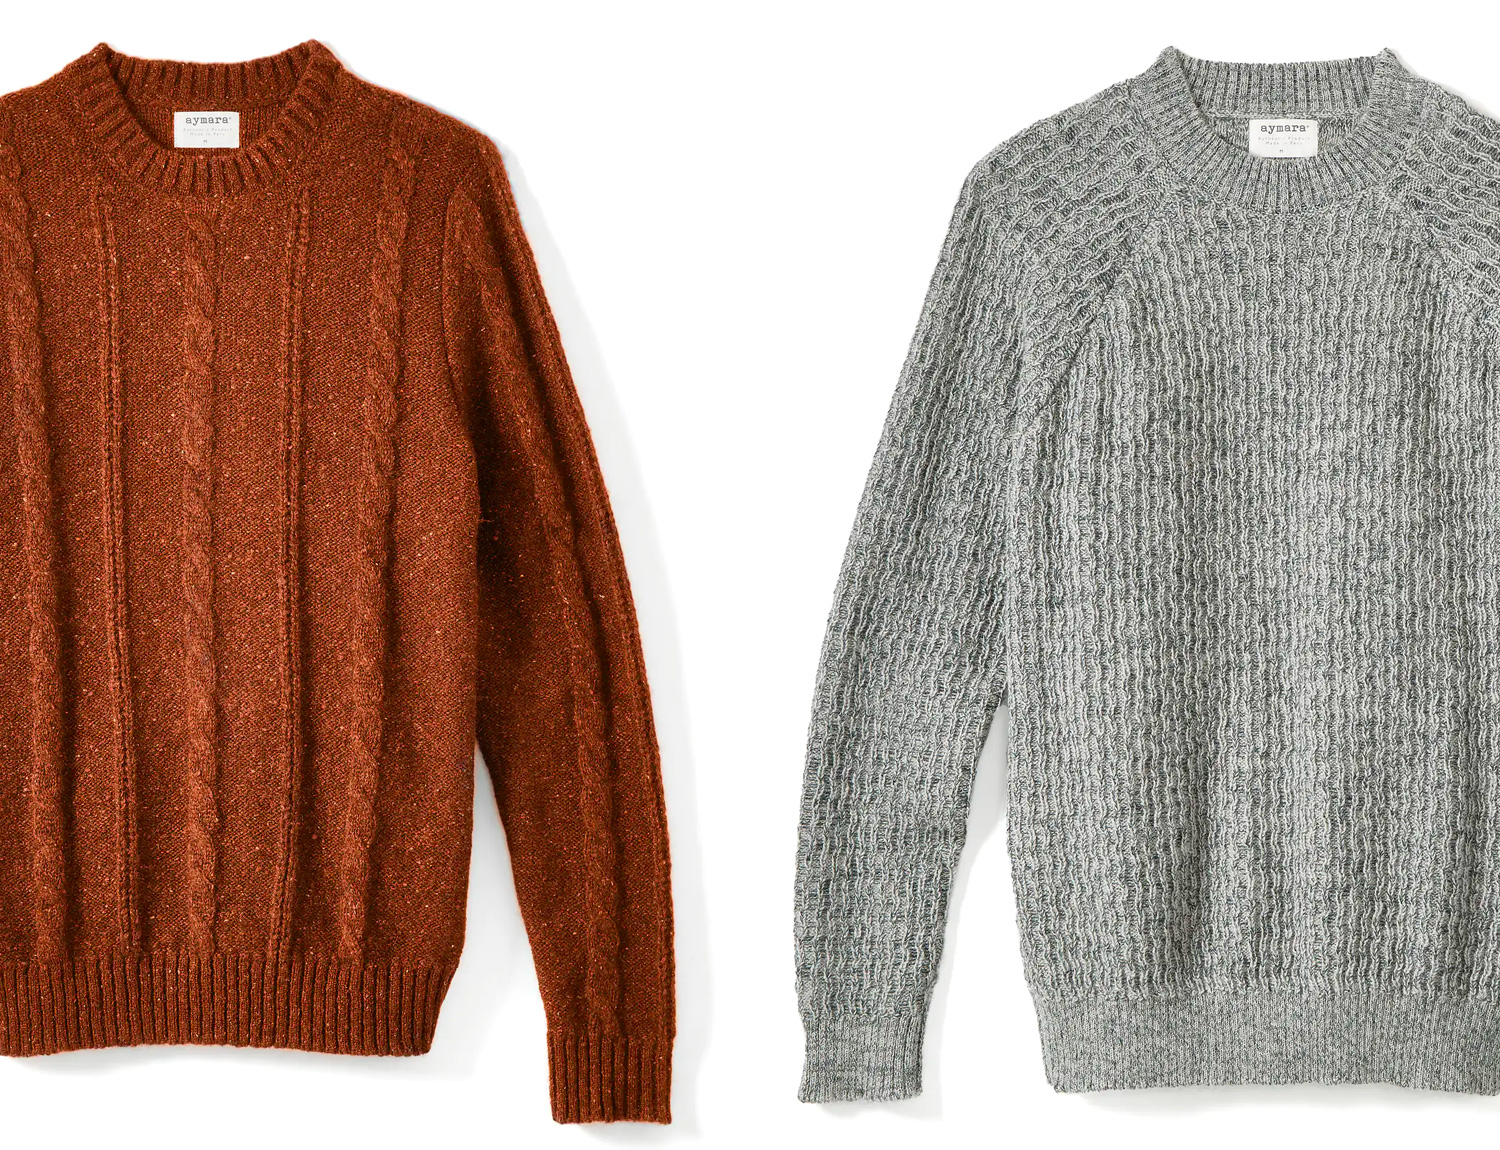 Warm & Soft: Alpaca & Merino at werd.com